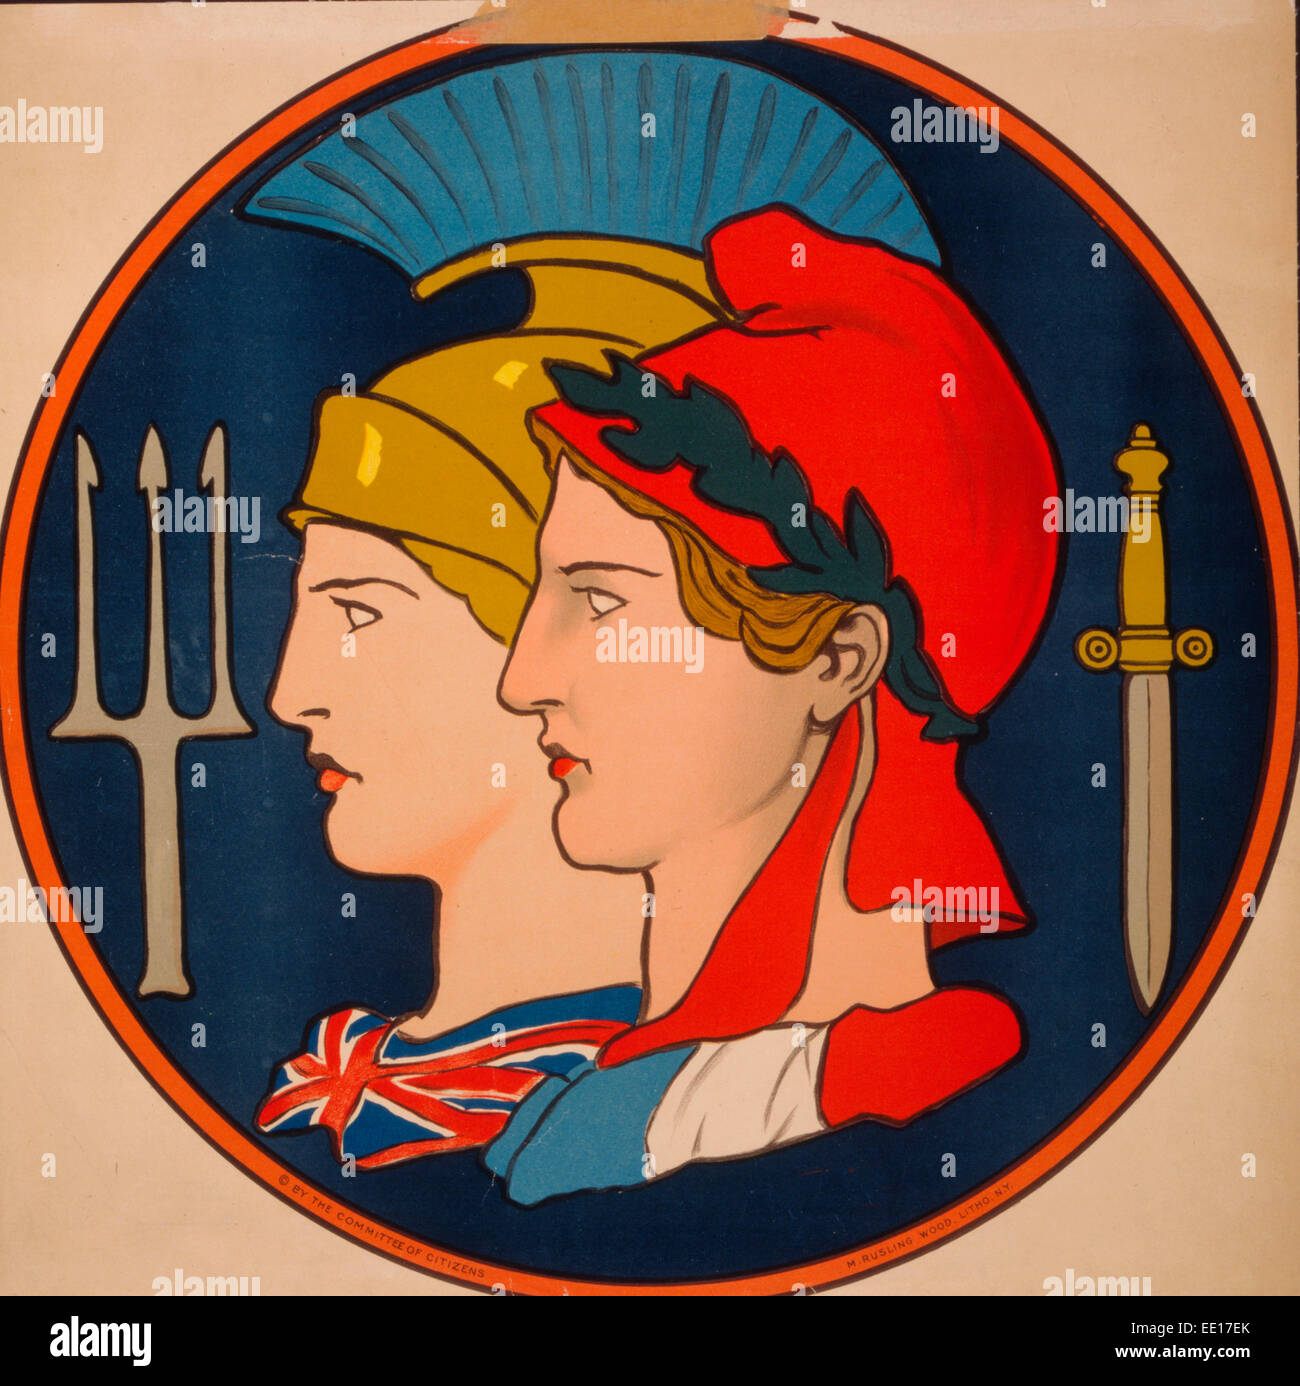 Emblem of France and Great Britain - Poster showing personifications of France and Great Britain, depicted in profile Stock Photo